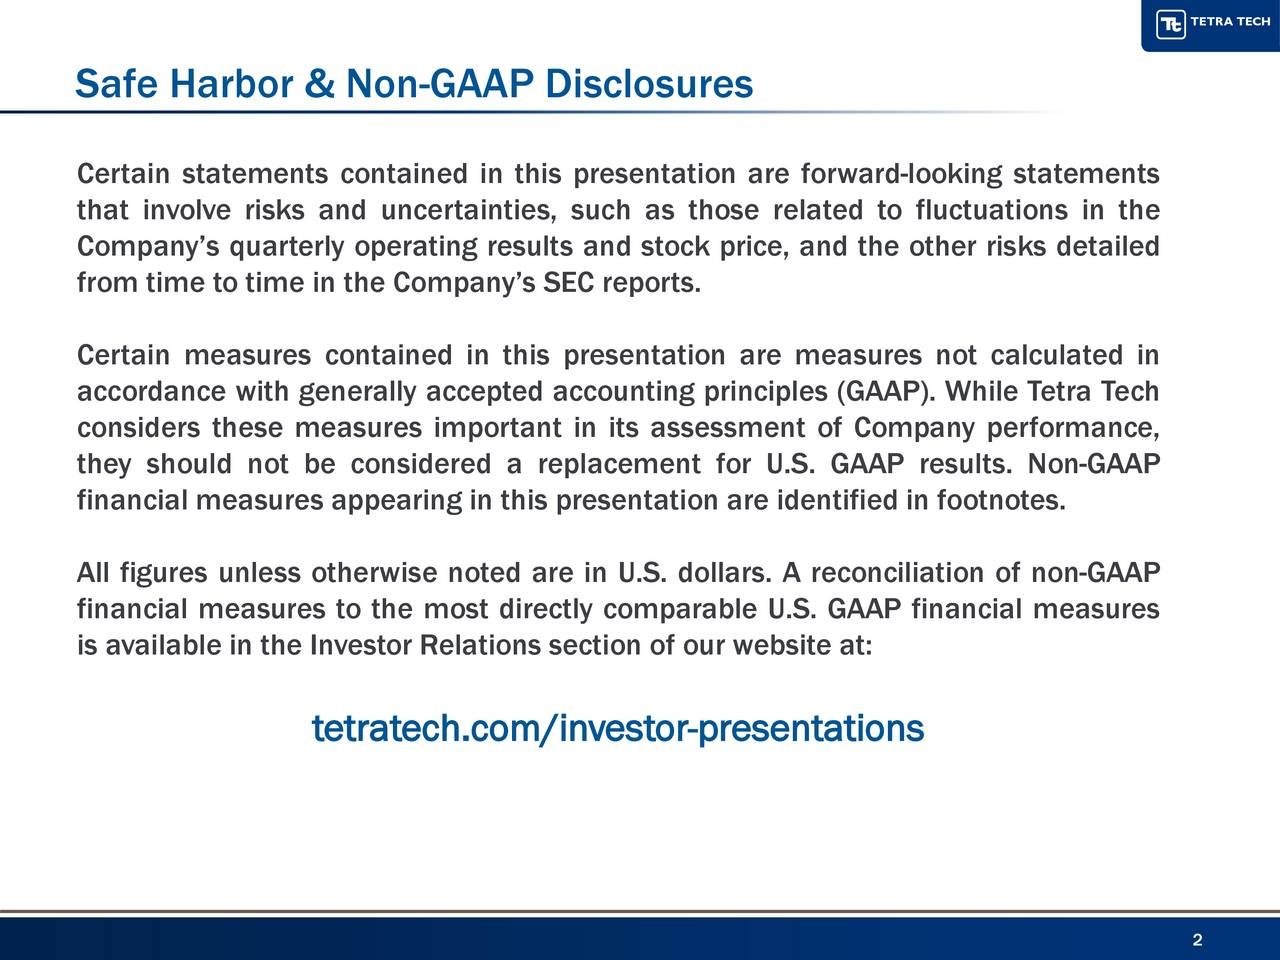 Certain statements contained in this presentation are forward-looking statements that involve risks and uncertainties, such as those related to fluctuations in the Companys quarterly operating results and stock price, and the other risks detailed from time to time in the Companys SEC reports. Certain measures contained in this presentation are measures not calculated in accordance with generally accepted accounting principles (GAAP). While Tetra Tech considers these measures important in its assessment of Company performance, they should not be considered a replacement for U.S. GAAP results. Non-GAAP financial measures appearing in this presentation are identified in footnotes. All figures unless otherwise noted are in U.S. dollars. A reconciliation of non-GAAP financial measures to the most directly comparable U.S. GAAP financial measures is available in the Investor Relations section of our website at: tetratech.com/investor-presentations